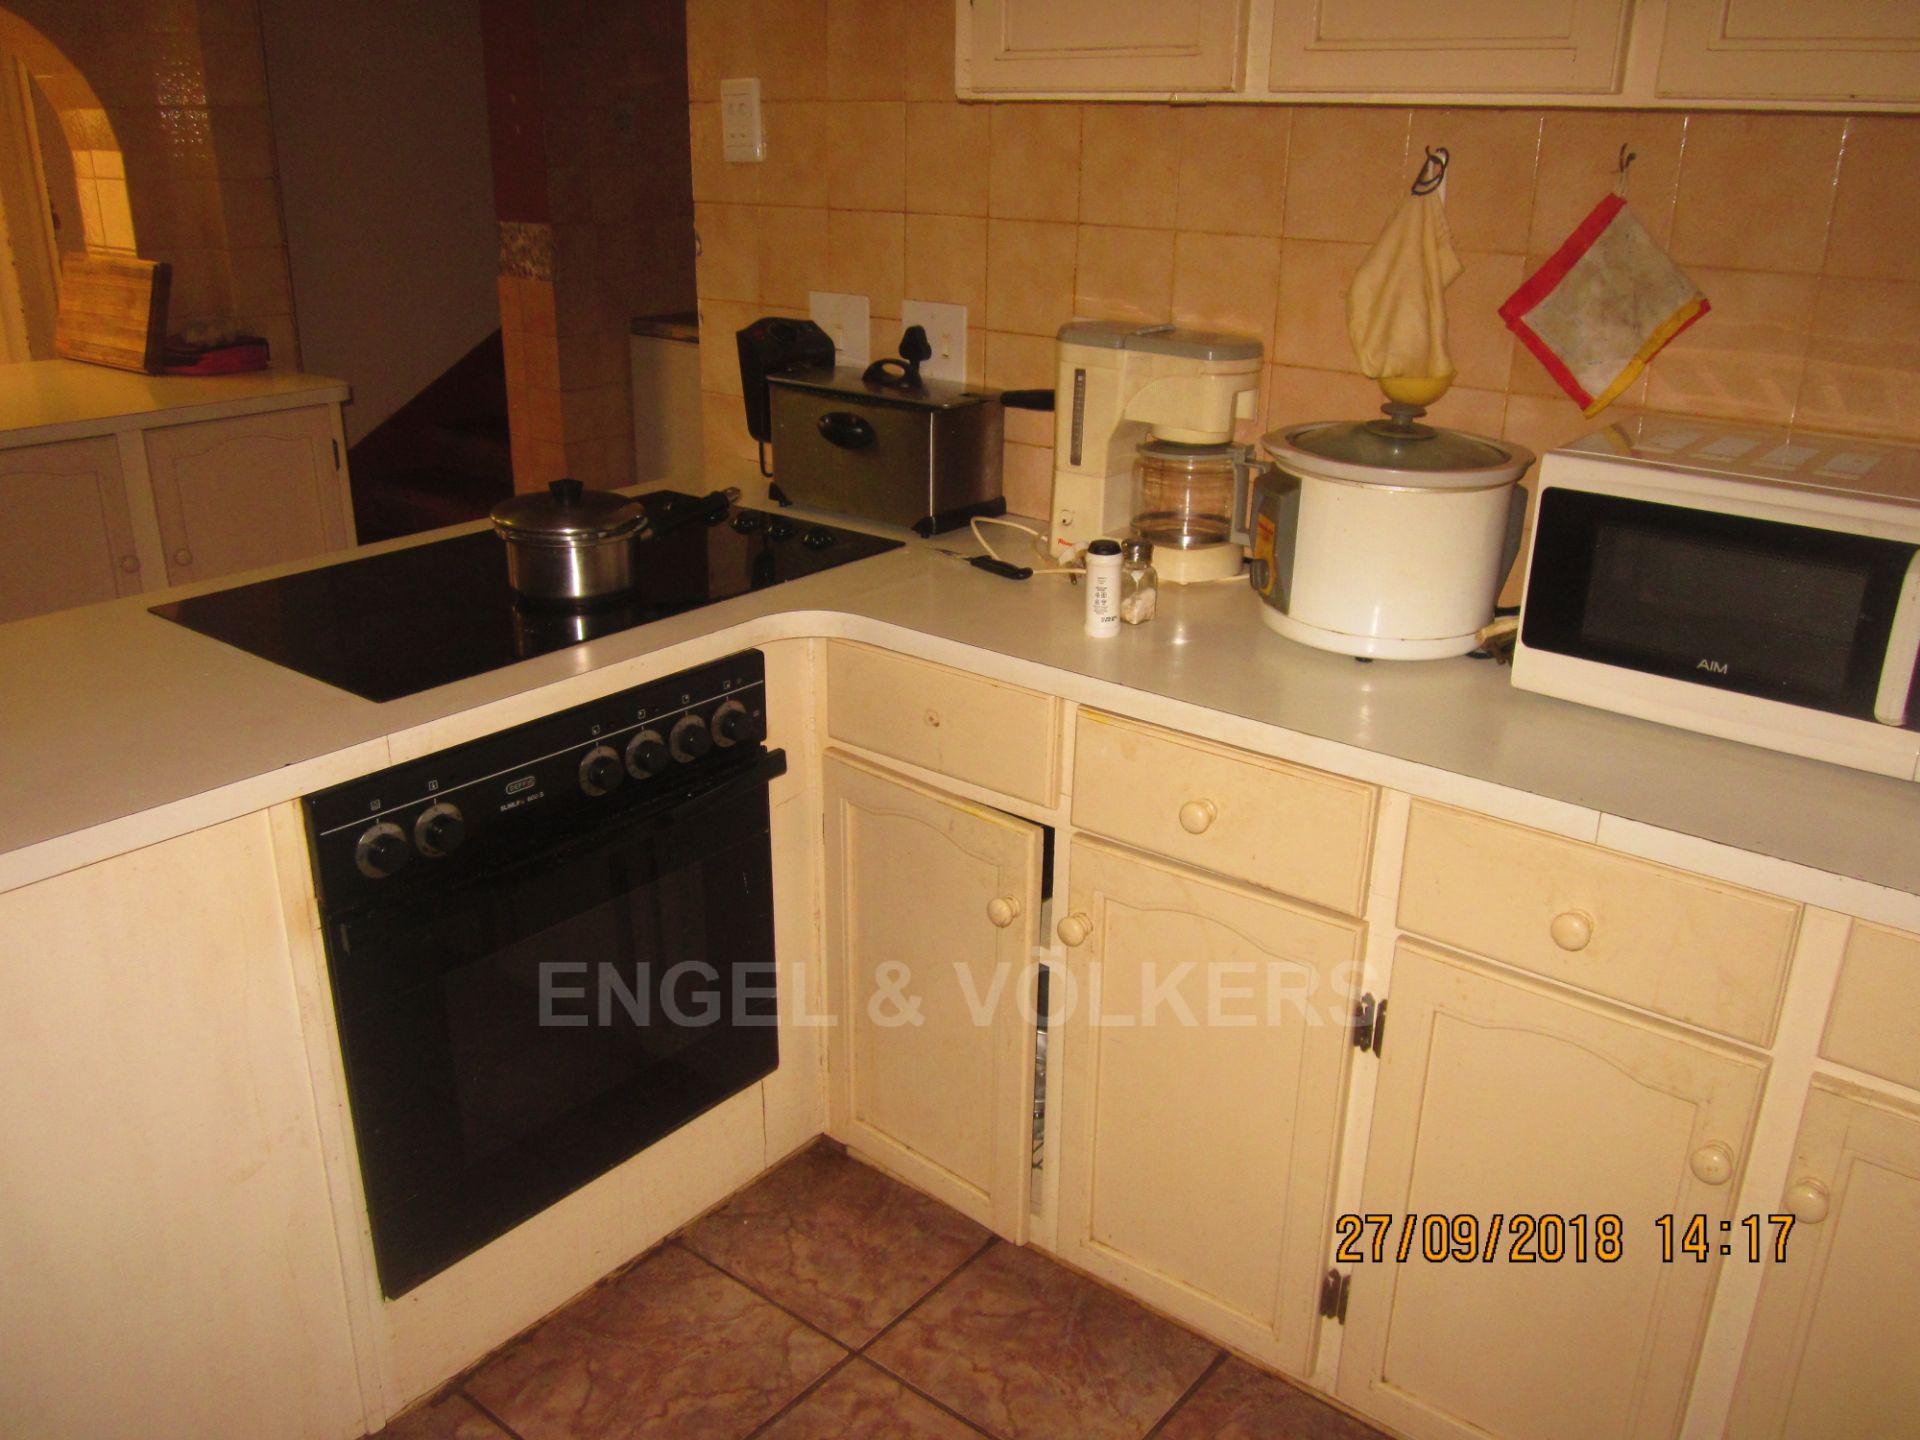 House in Glenmore - 007 Kitchen.JPG